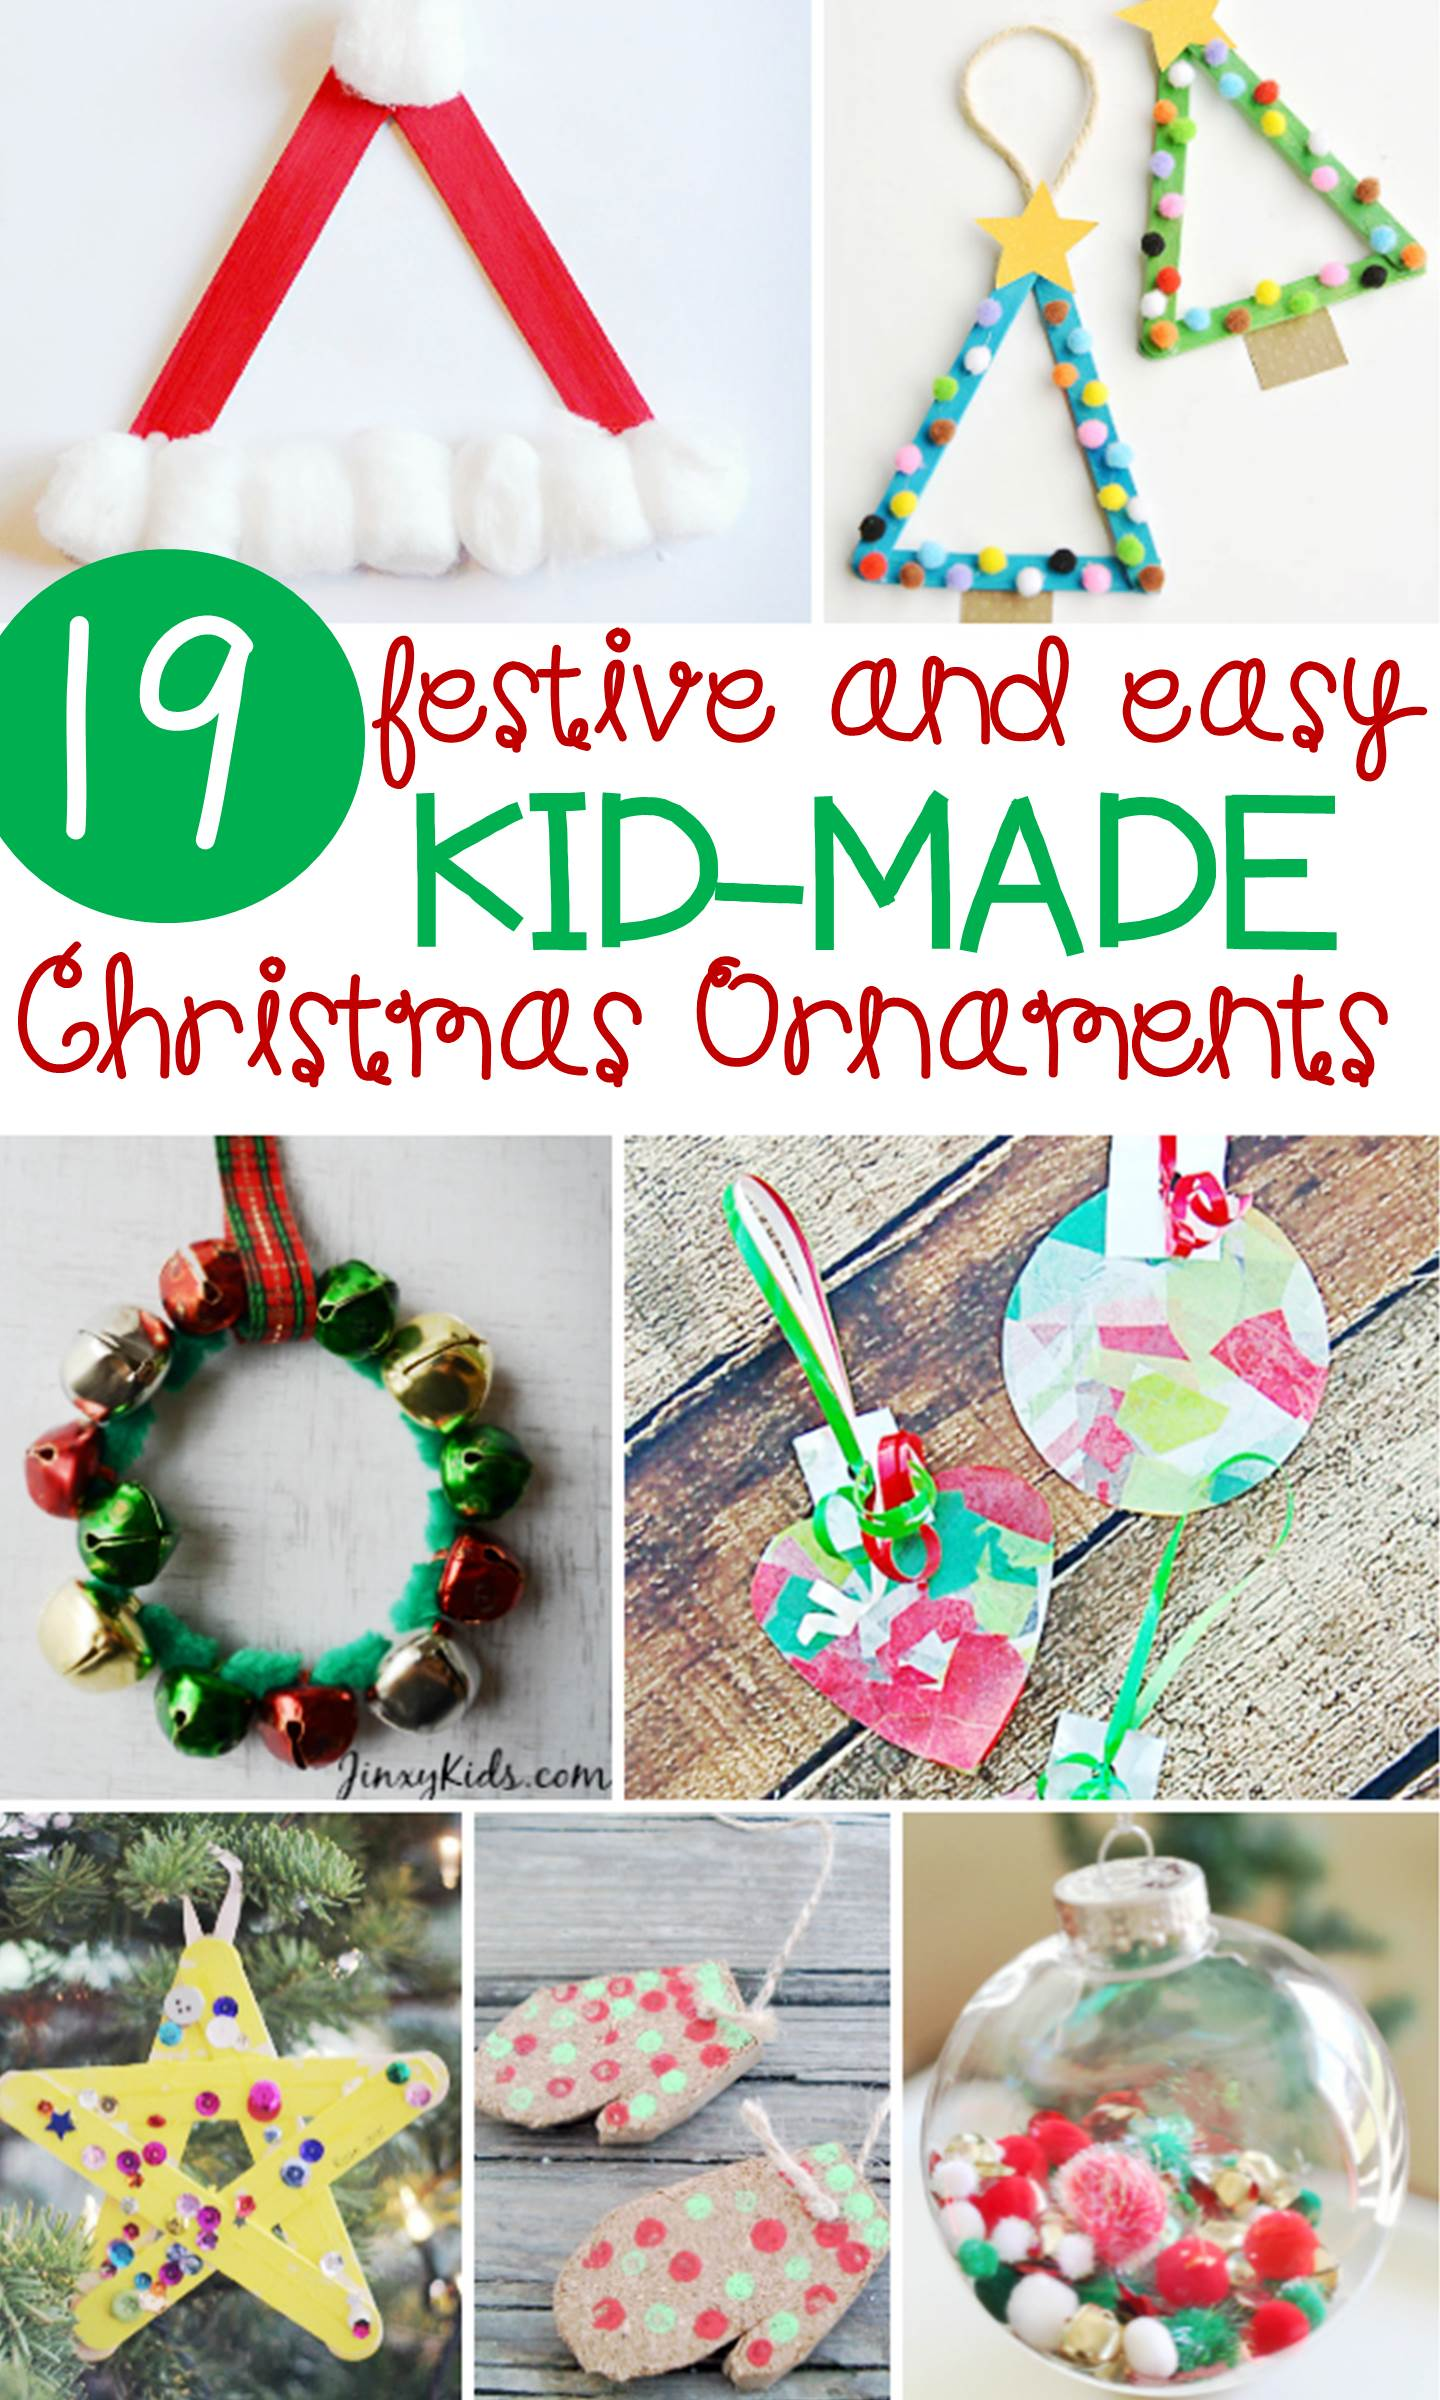 Festive And Simple Kids Christmas Ornaments